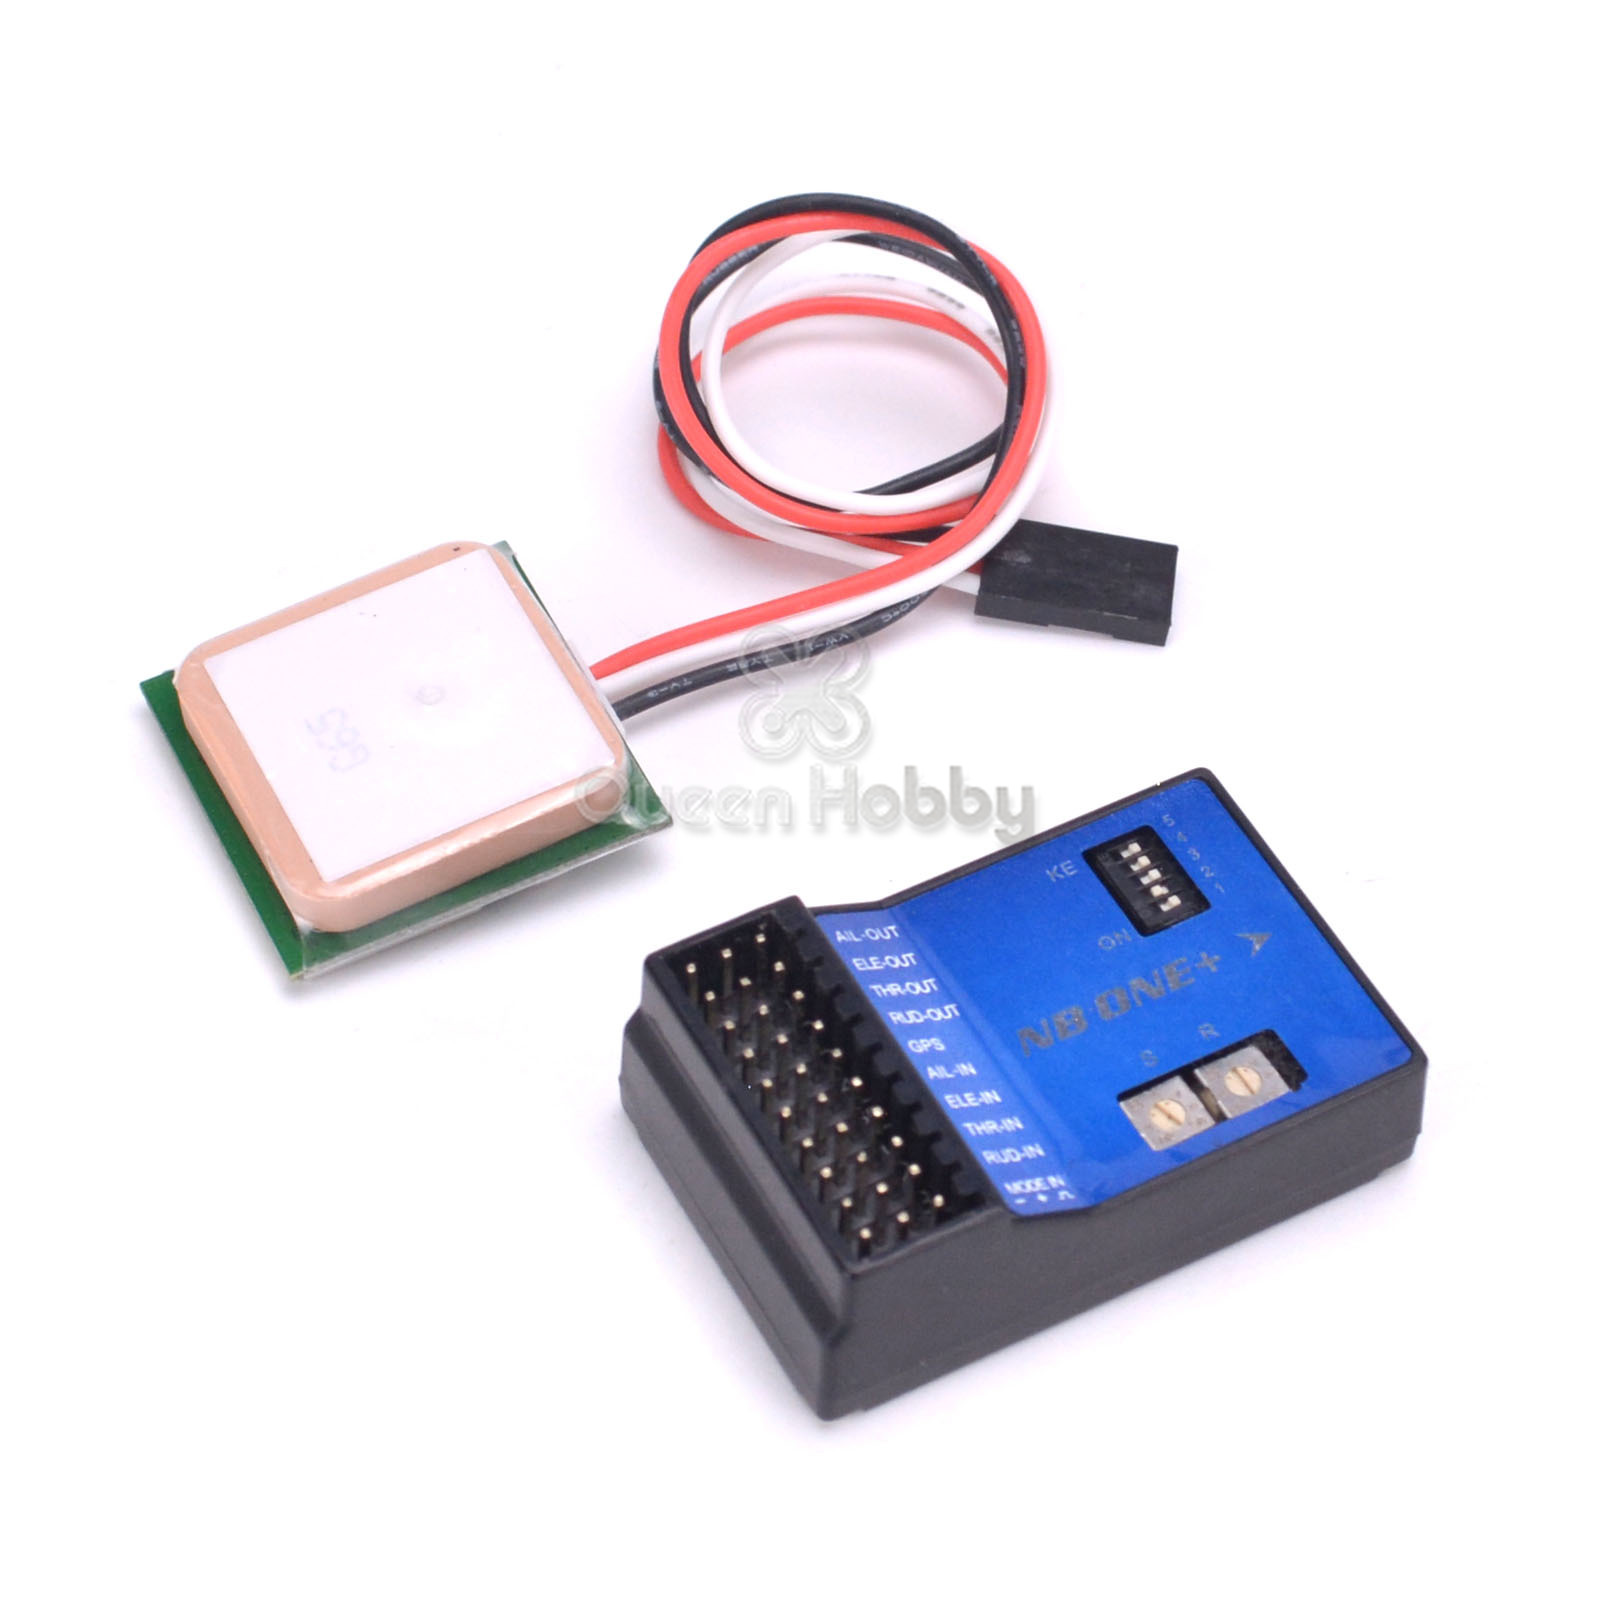 JMT 32 Bit Flight Controller 6-Axis Gyro Altitude Hold For FPV RC Fixed Wing